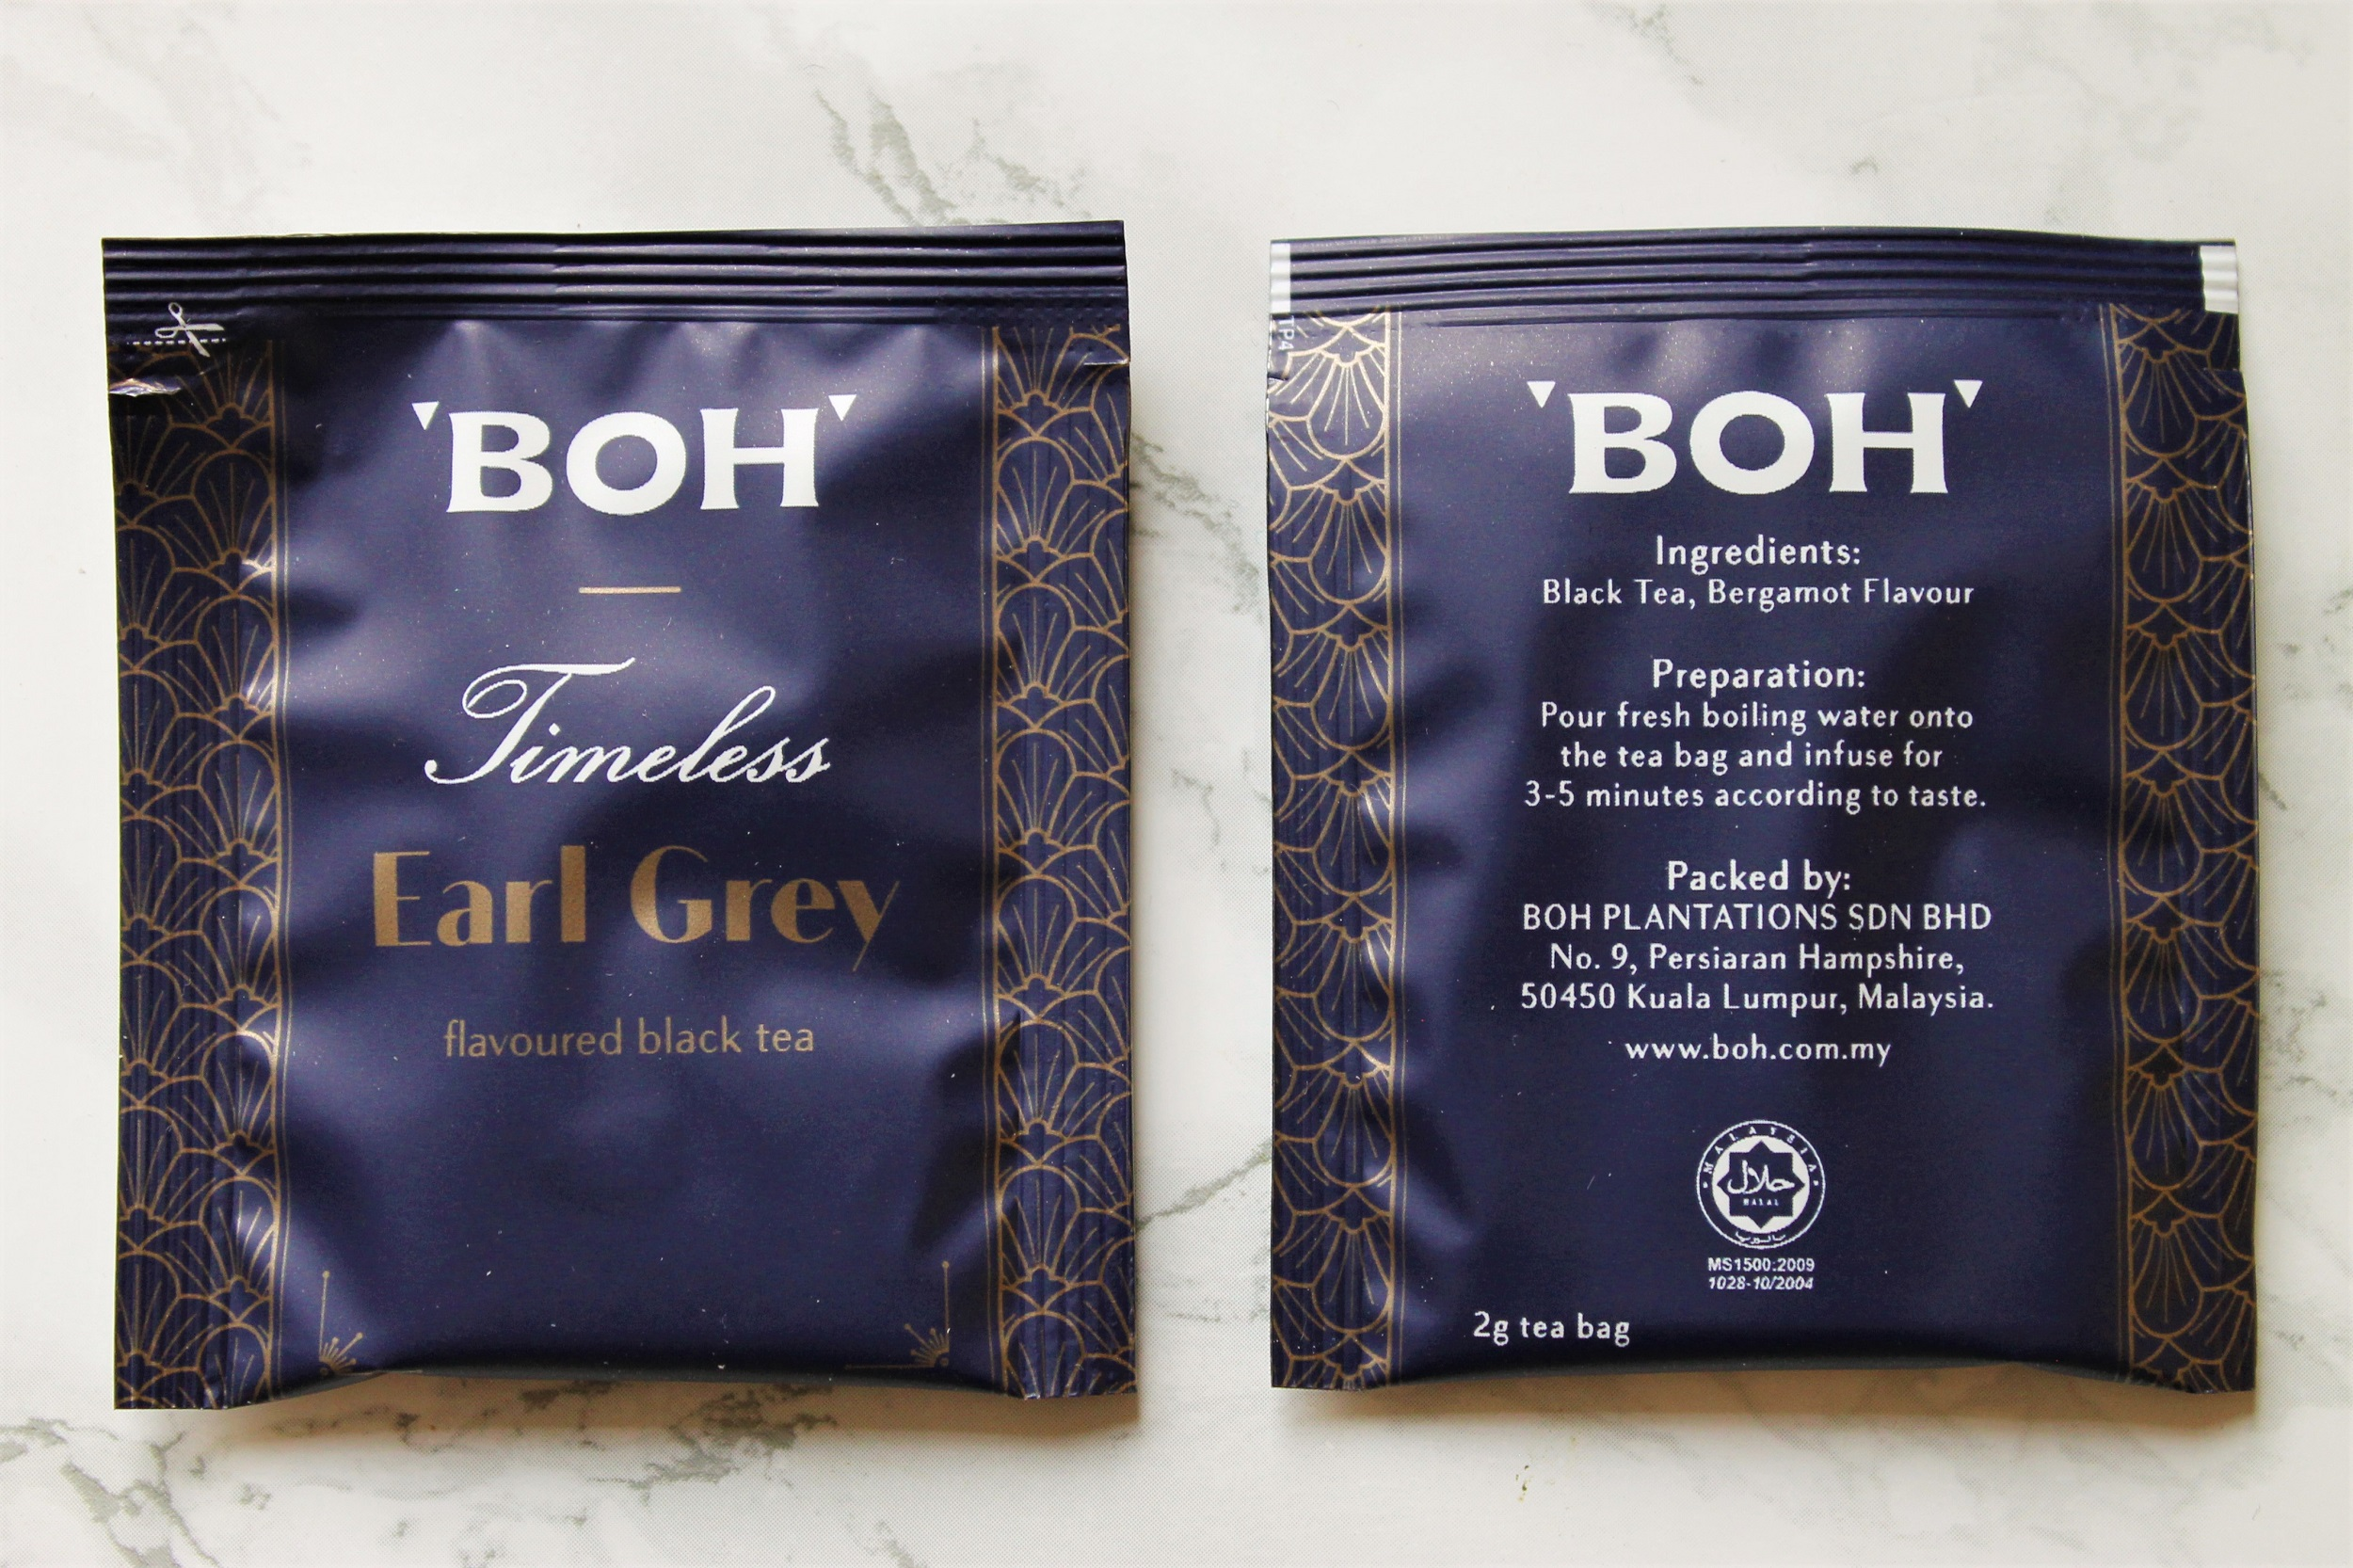 boh earl grey tea bags